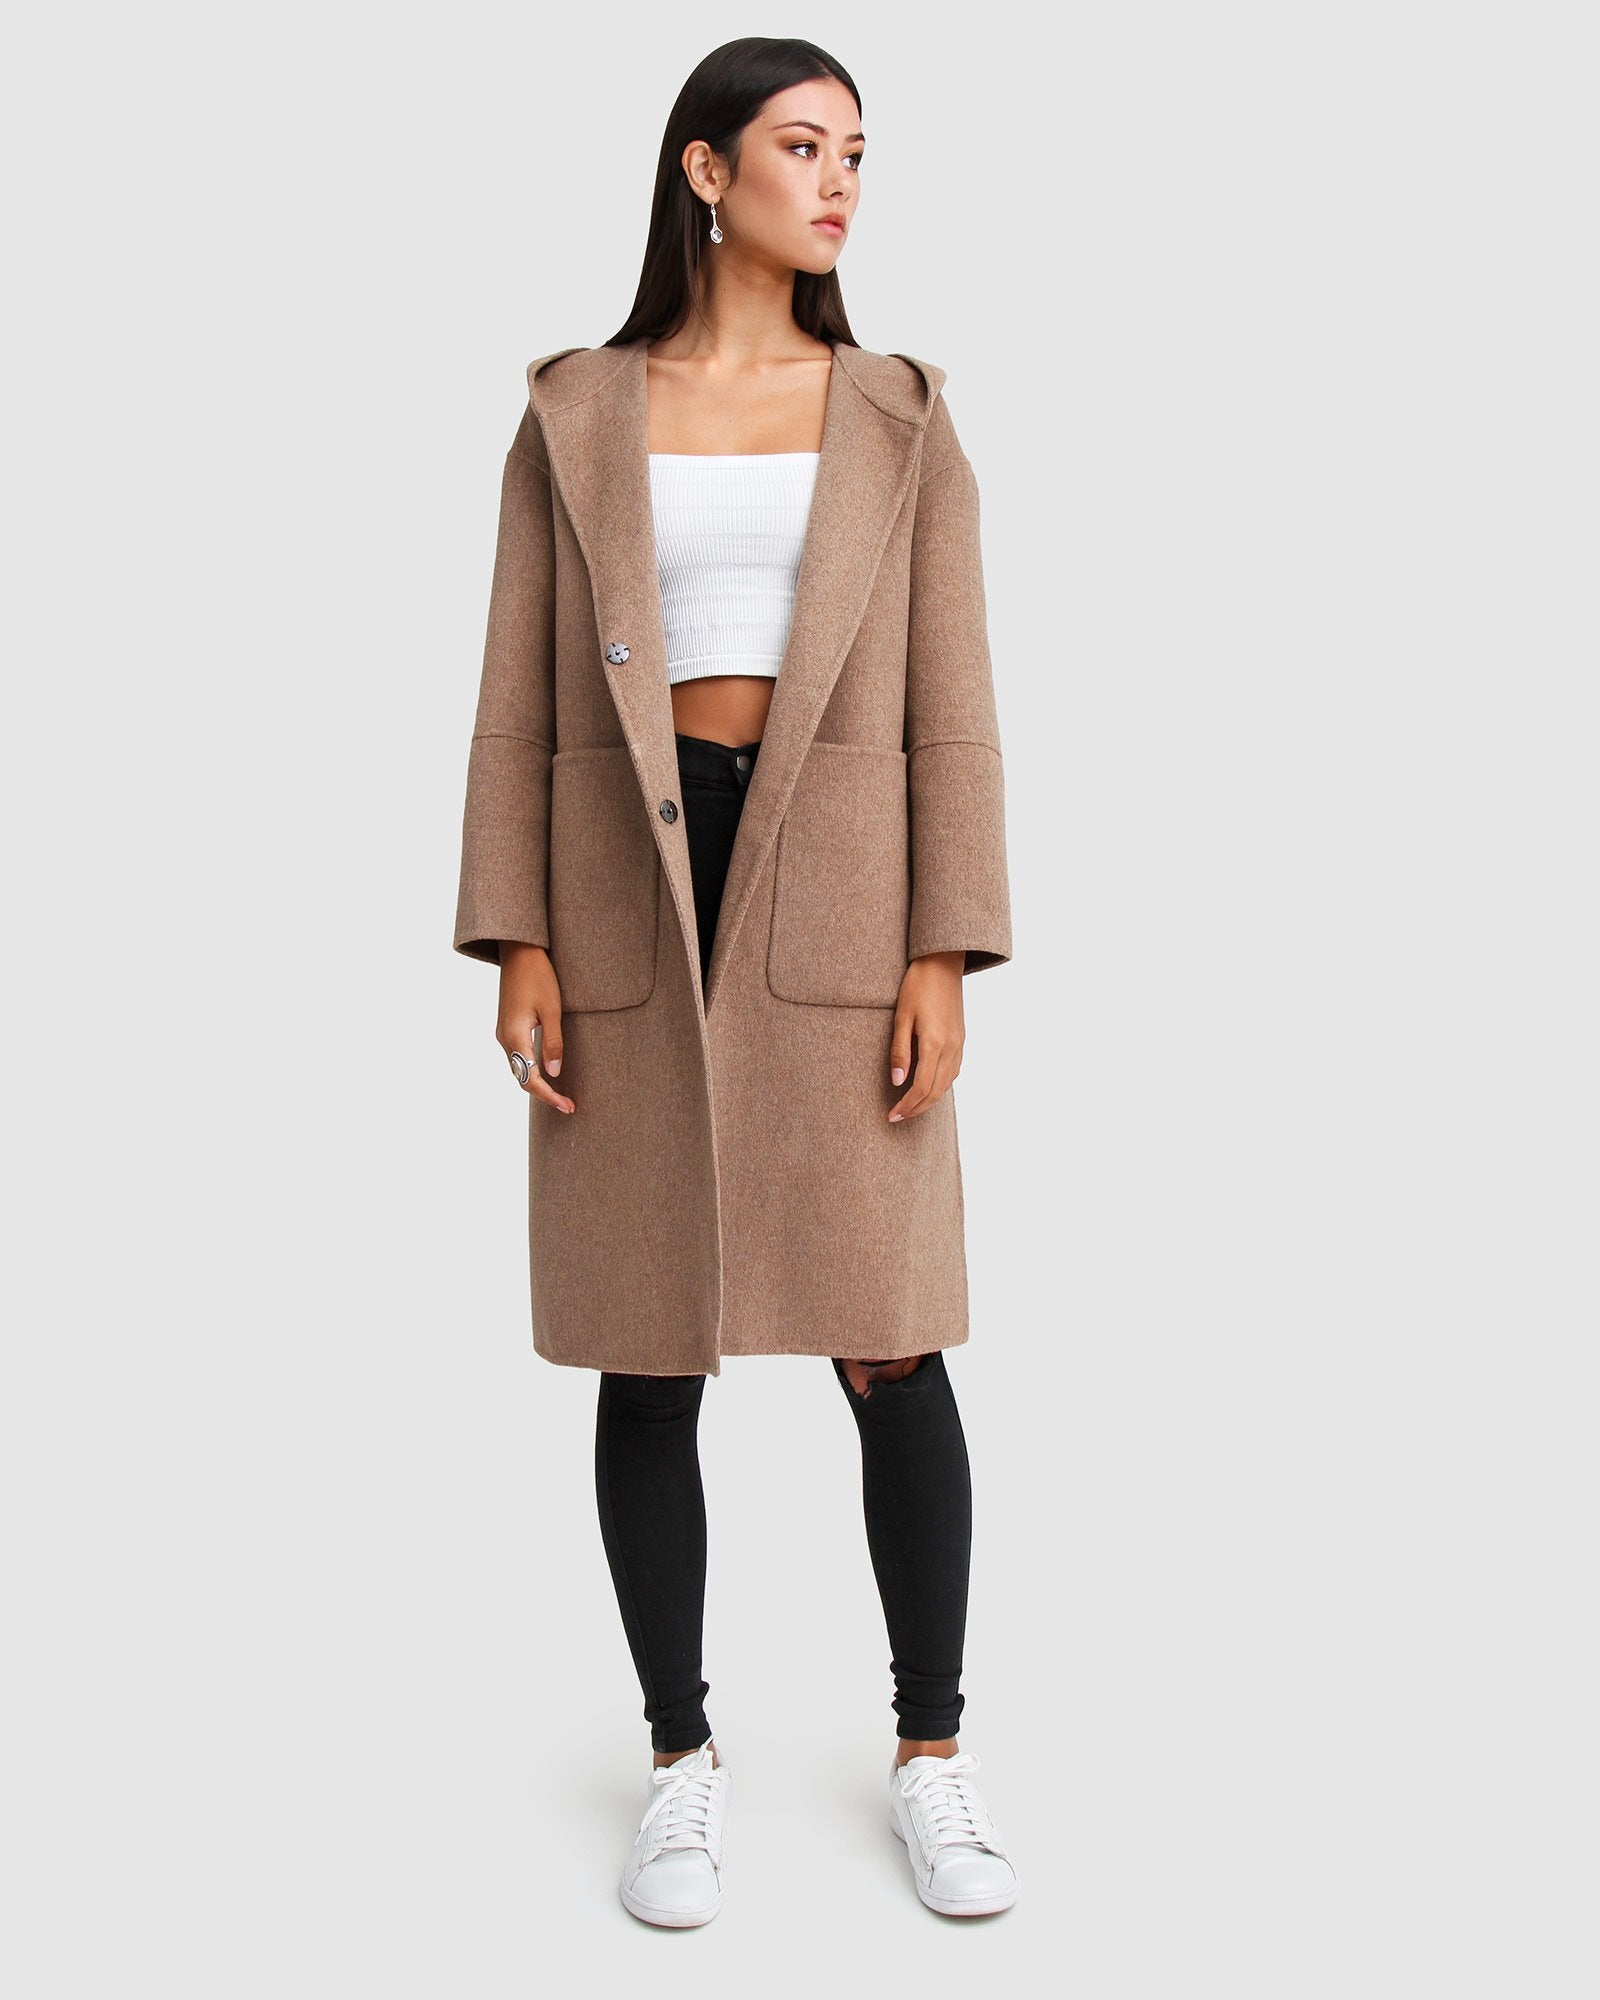 Walk This Way Wool Blend Oversized Coat - Oat